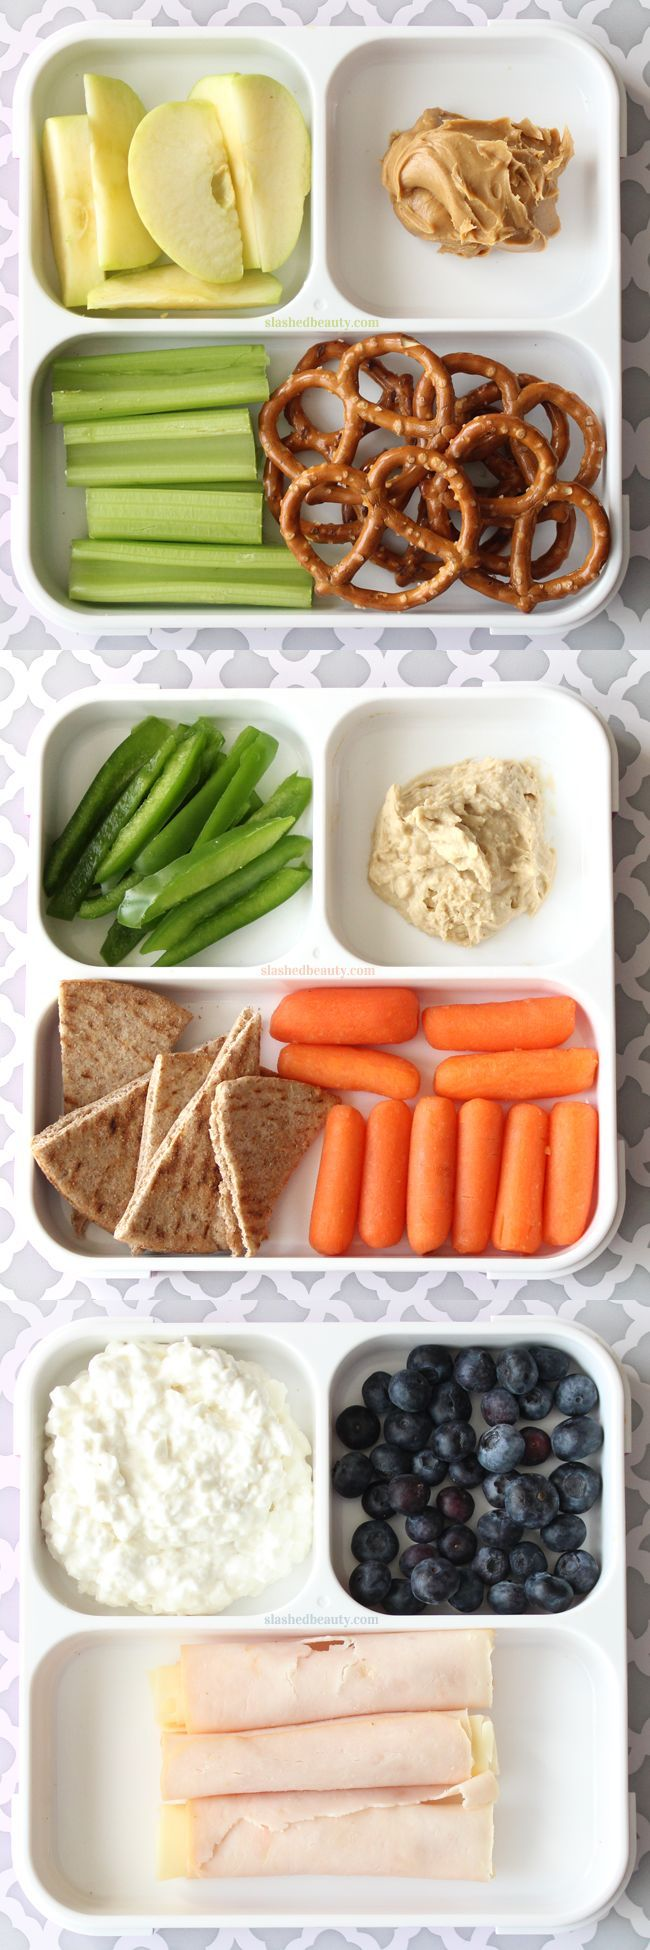 549 Best Images About Healthy Snacks For Kids On Pinterest